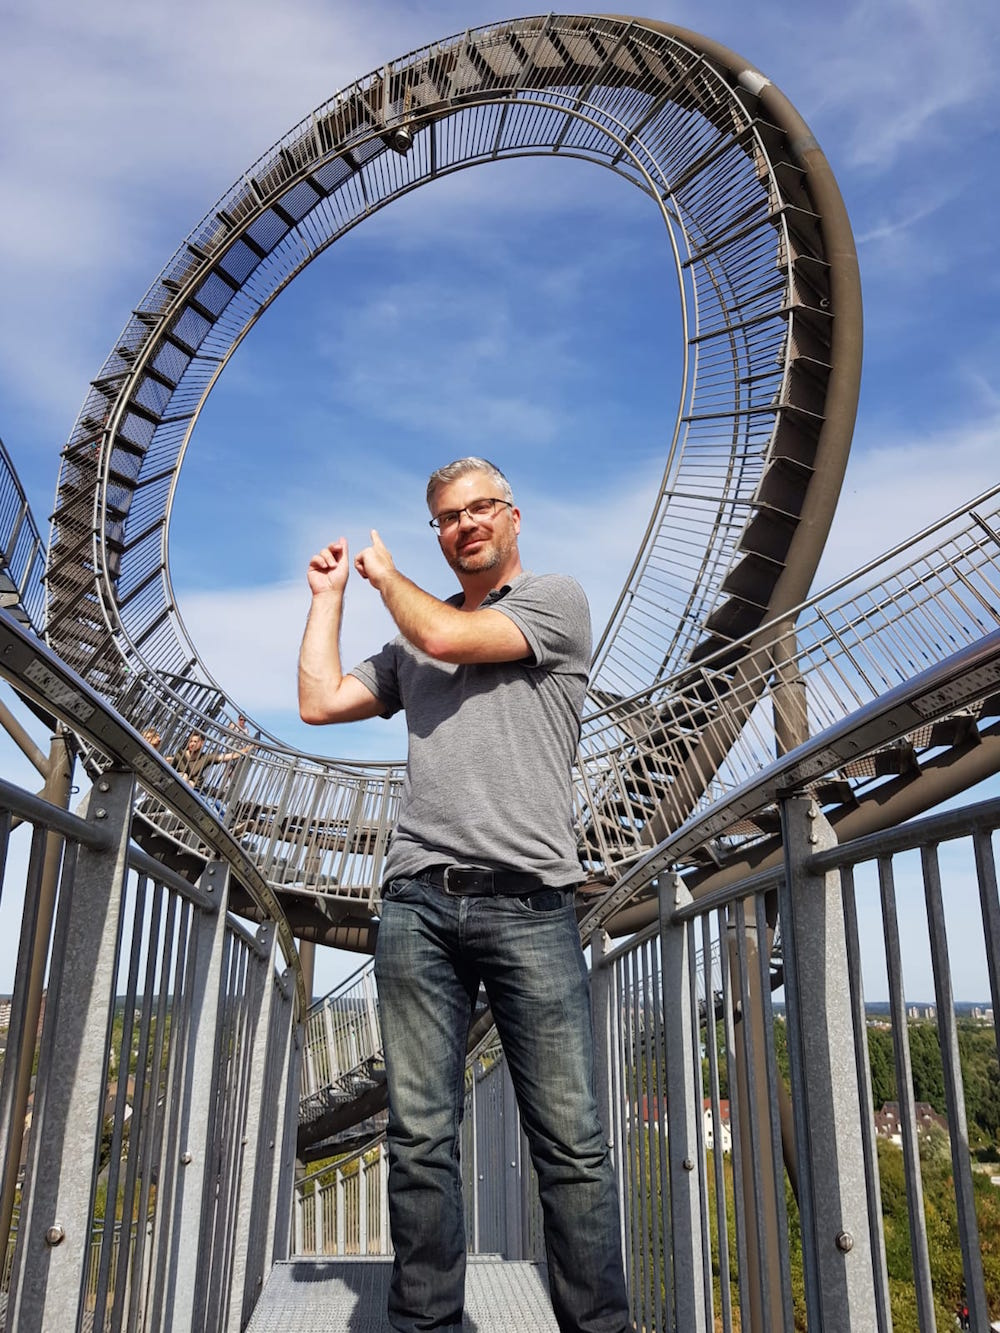 Tiger and Turtle - Magic Mountain: Die begehbare Achterbahn im Ruhrgebiet